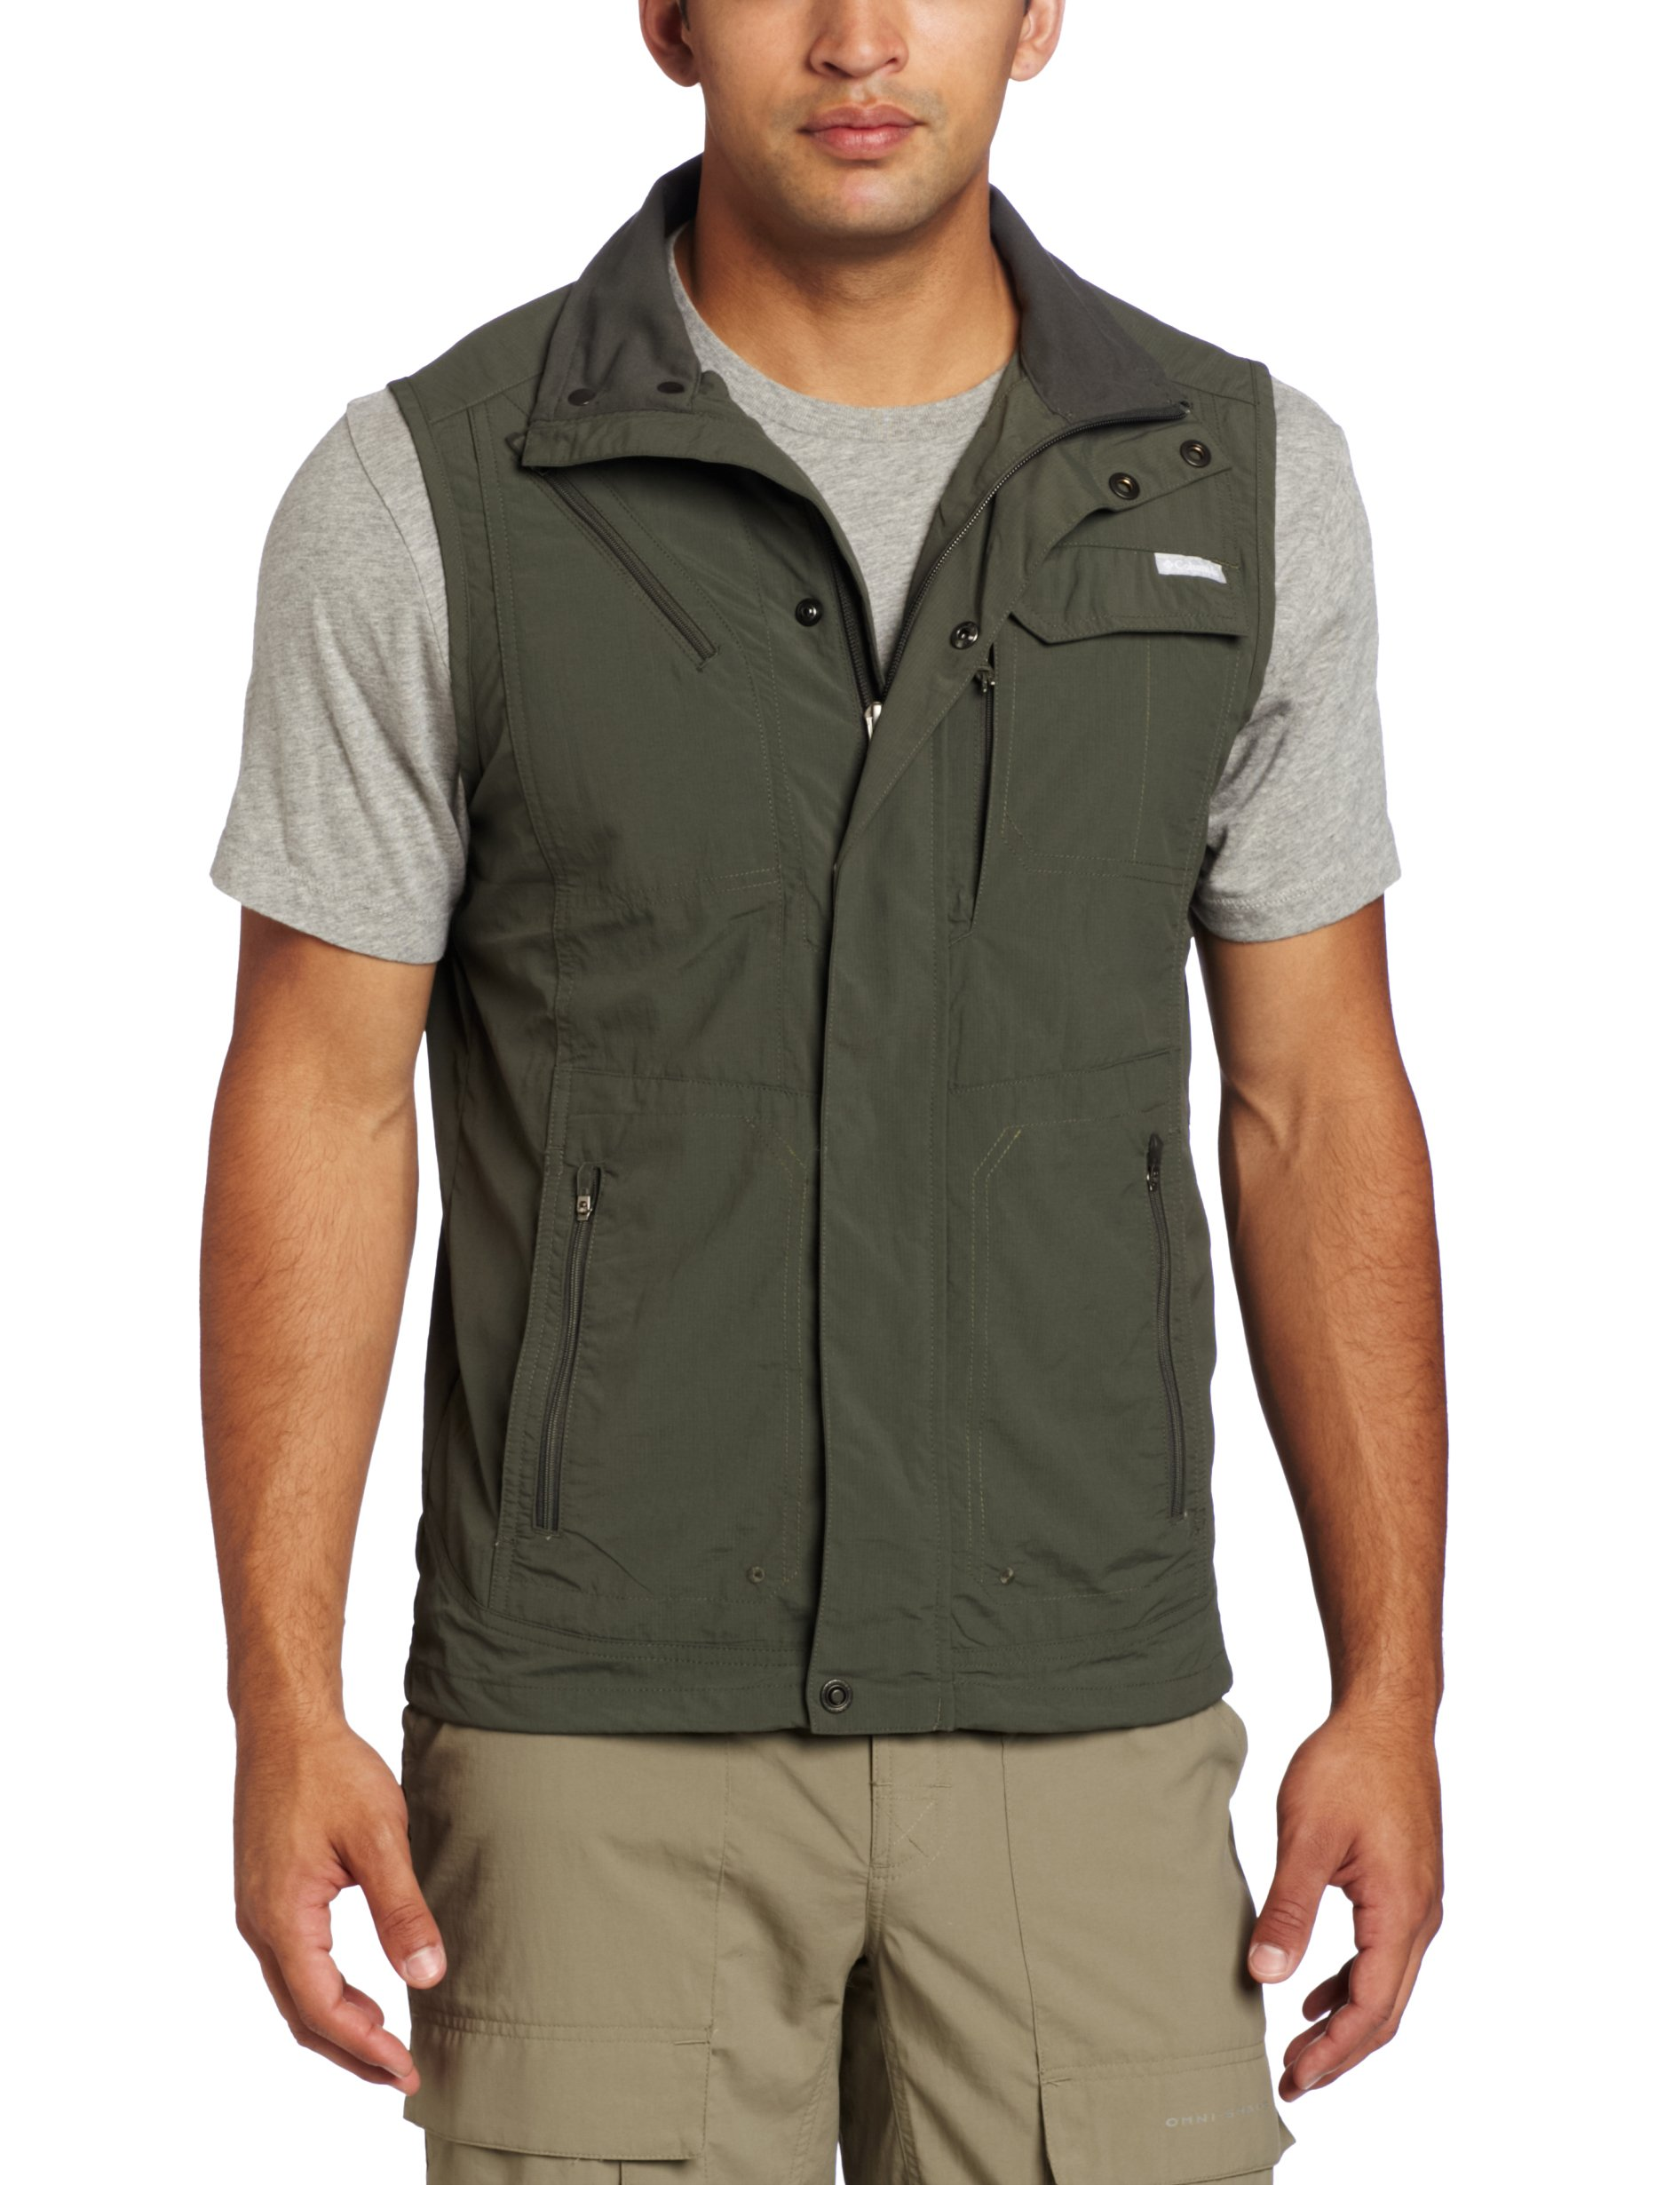 Columbia Men's Silver Ridge Vest, Gravel, Large by Columbia (Image #1)